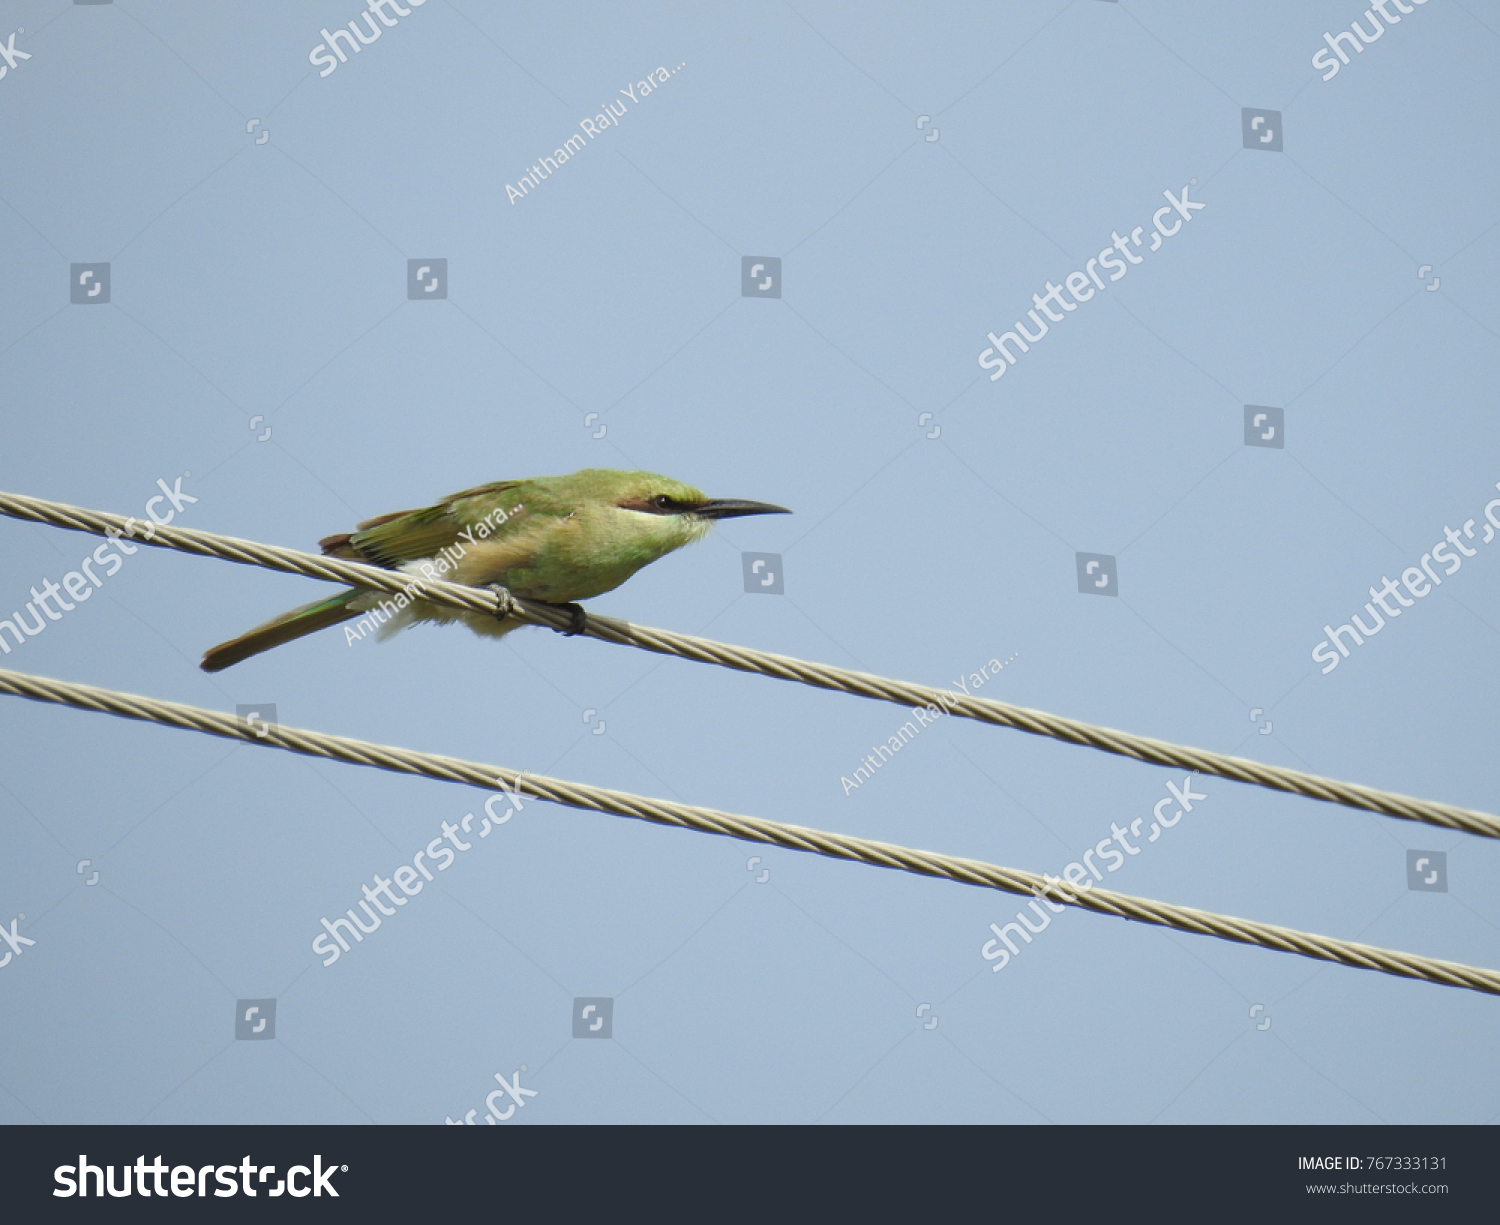 Green Beeeater Sitting On Wire Grassland Stock Photo (Edit Now ...